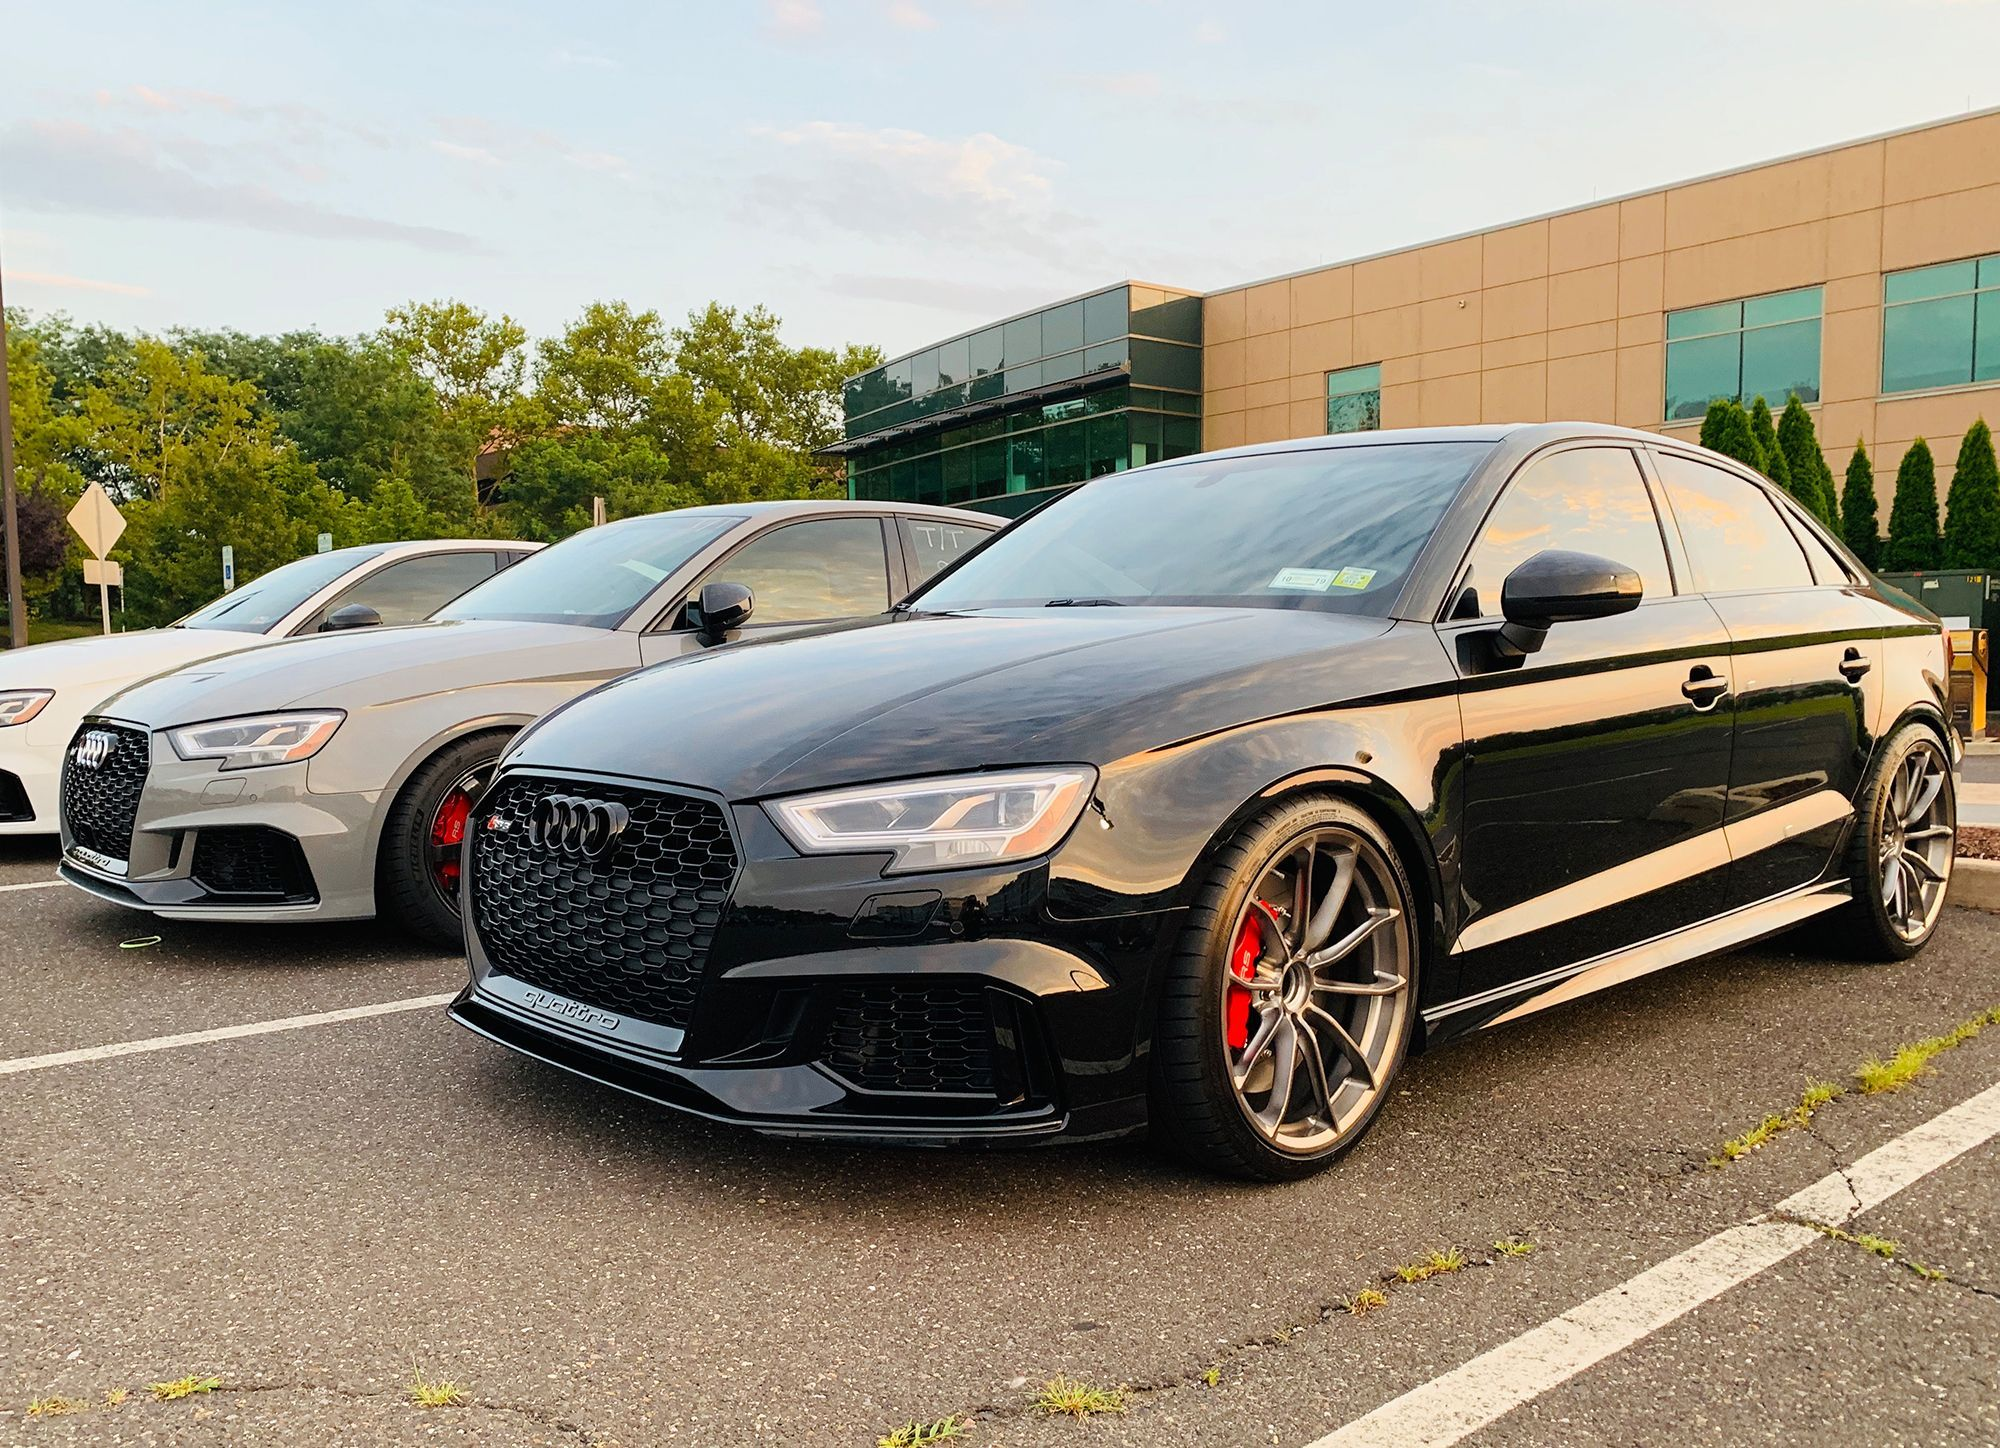 Pin By Fadymia On Inspirational In 2020 Audi Rs3 Audi Black Audi